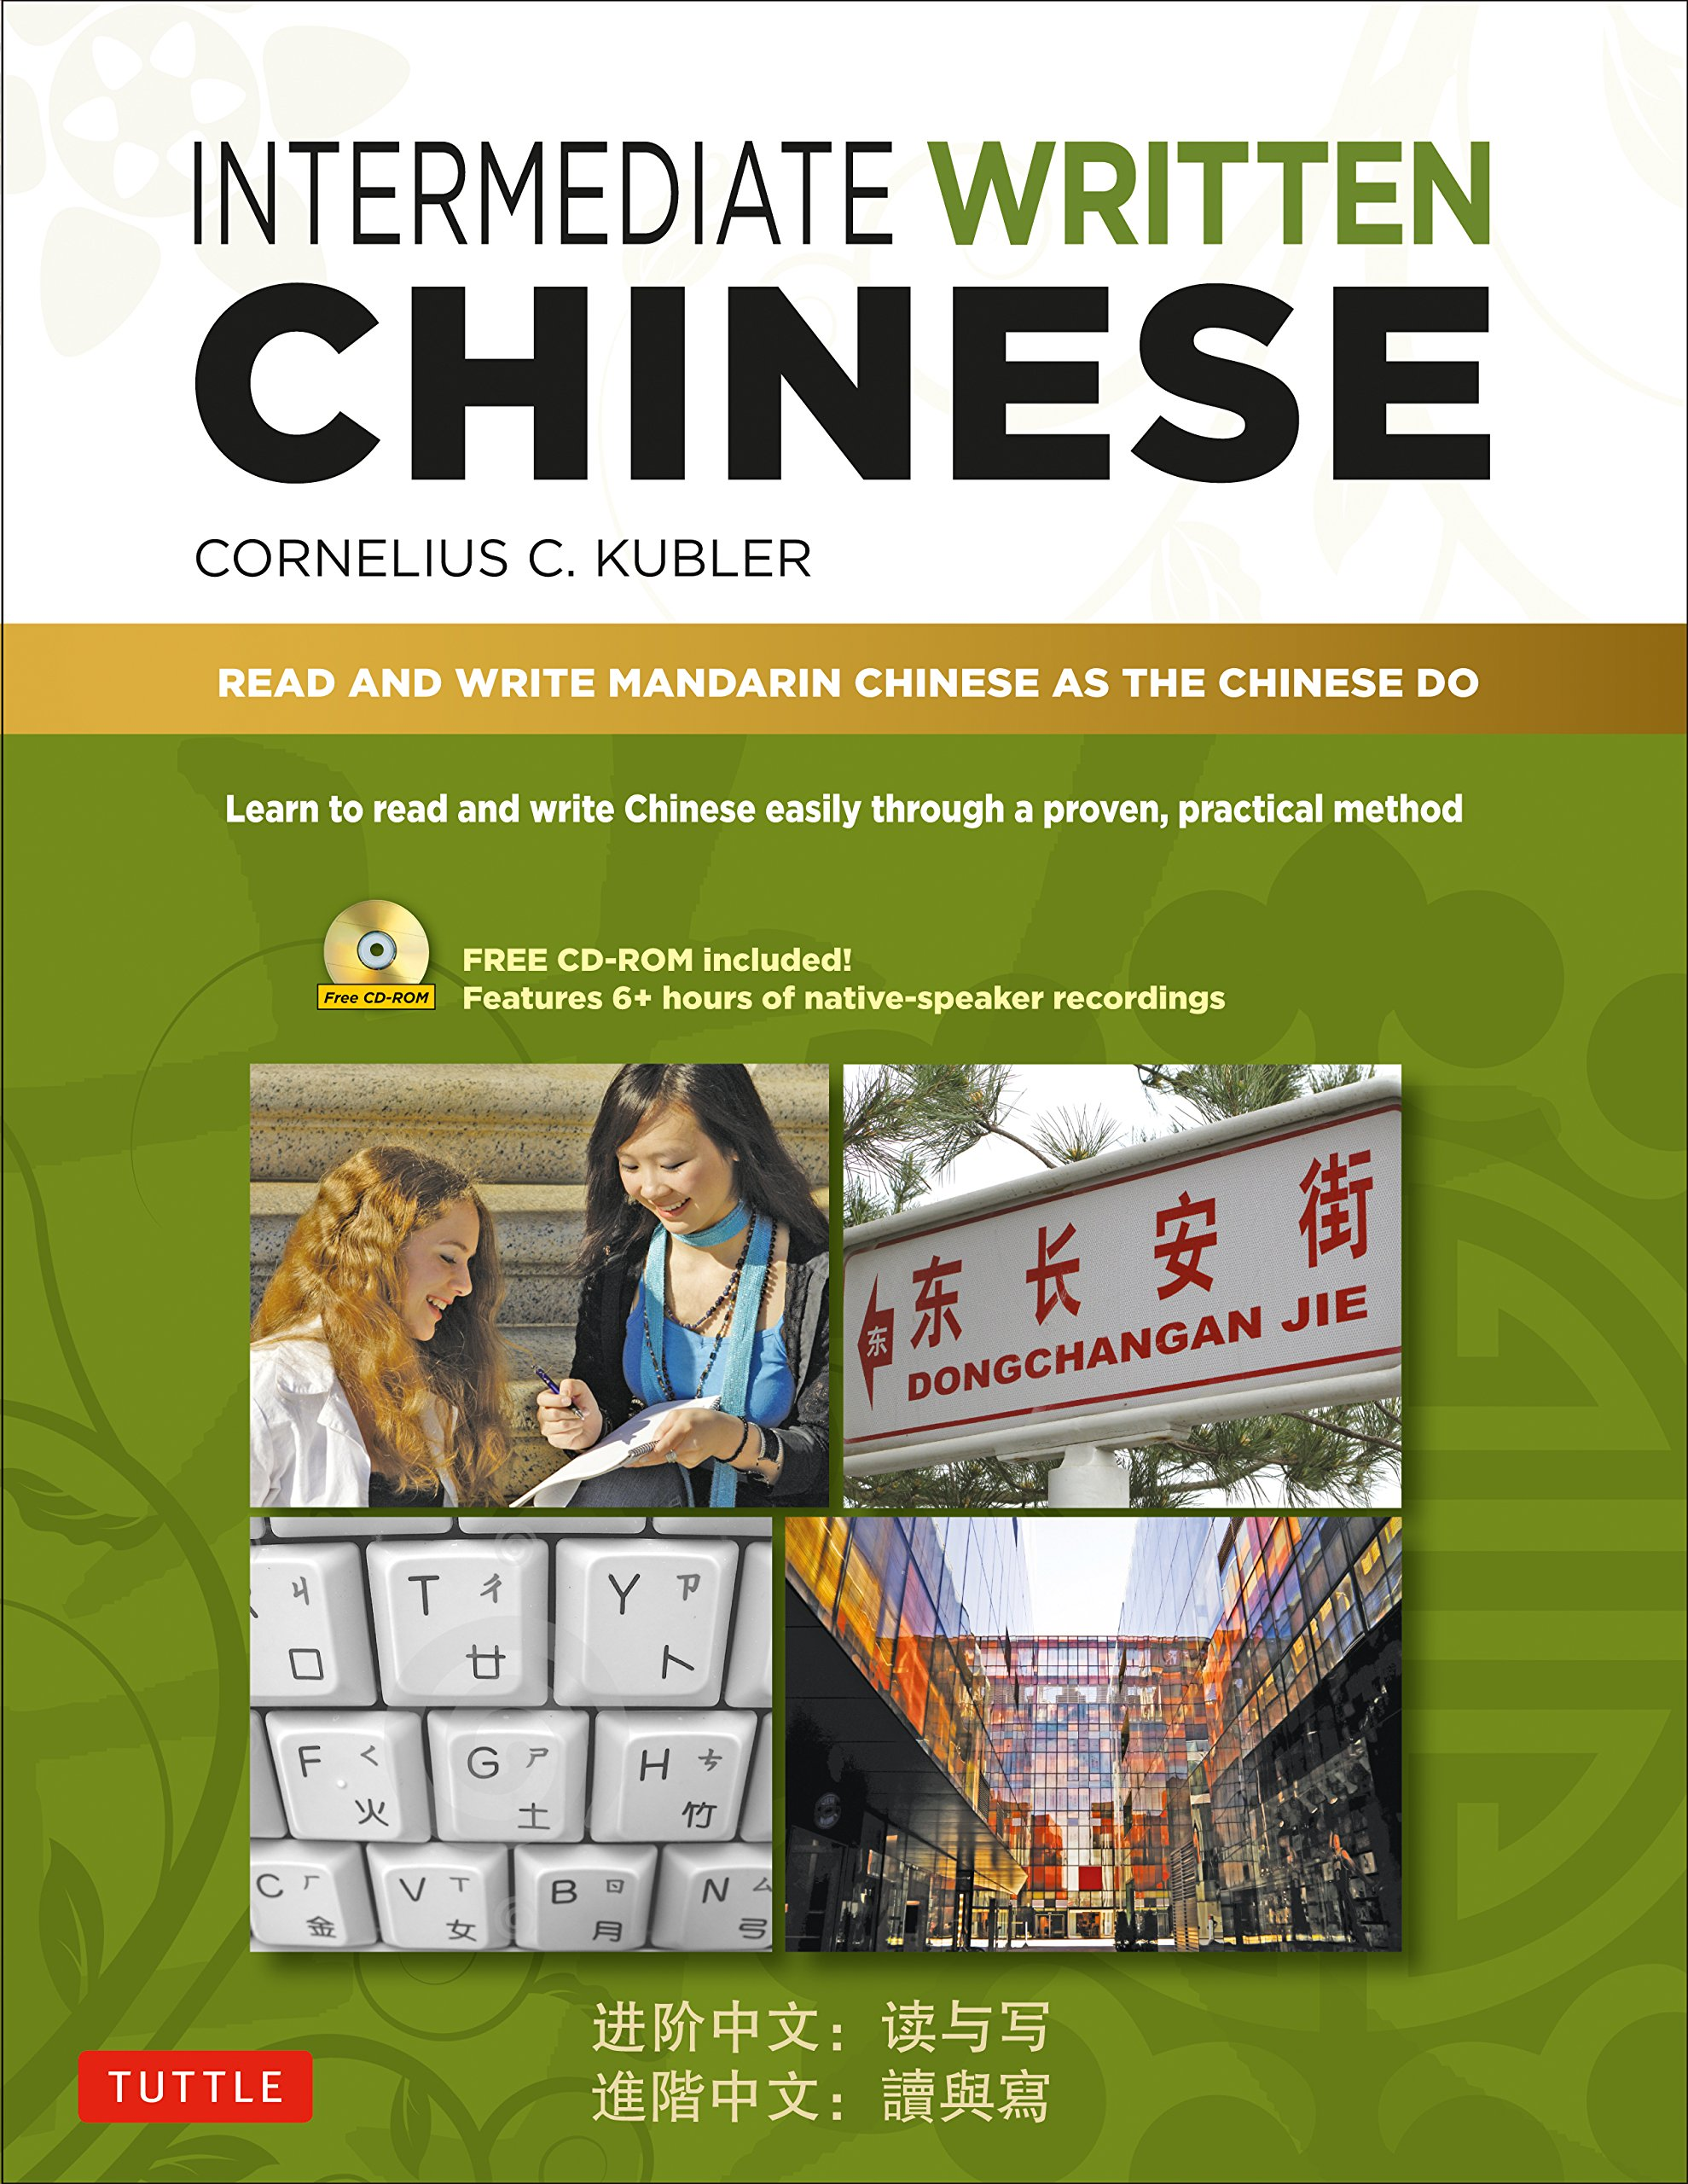 Amazon.com: Intermediate Written Chinese: Read and Write Mandarin Chinese  As the Chinese Do (Includes MP3 Audio & Printable PDFs) (9780804840200):  Cornelius ...